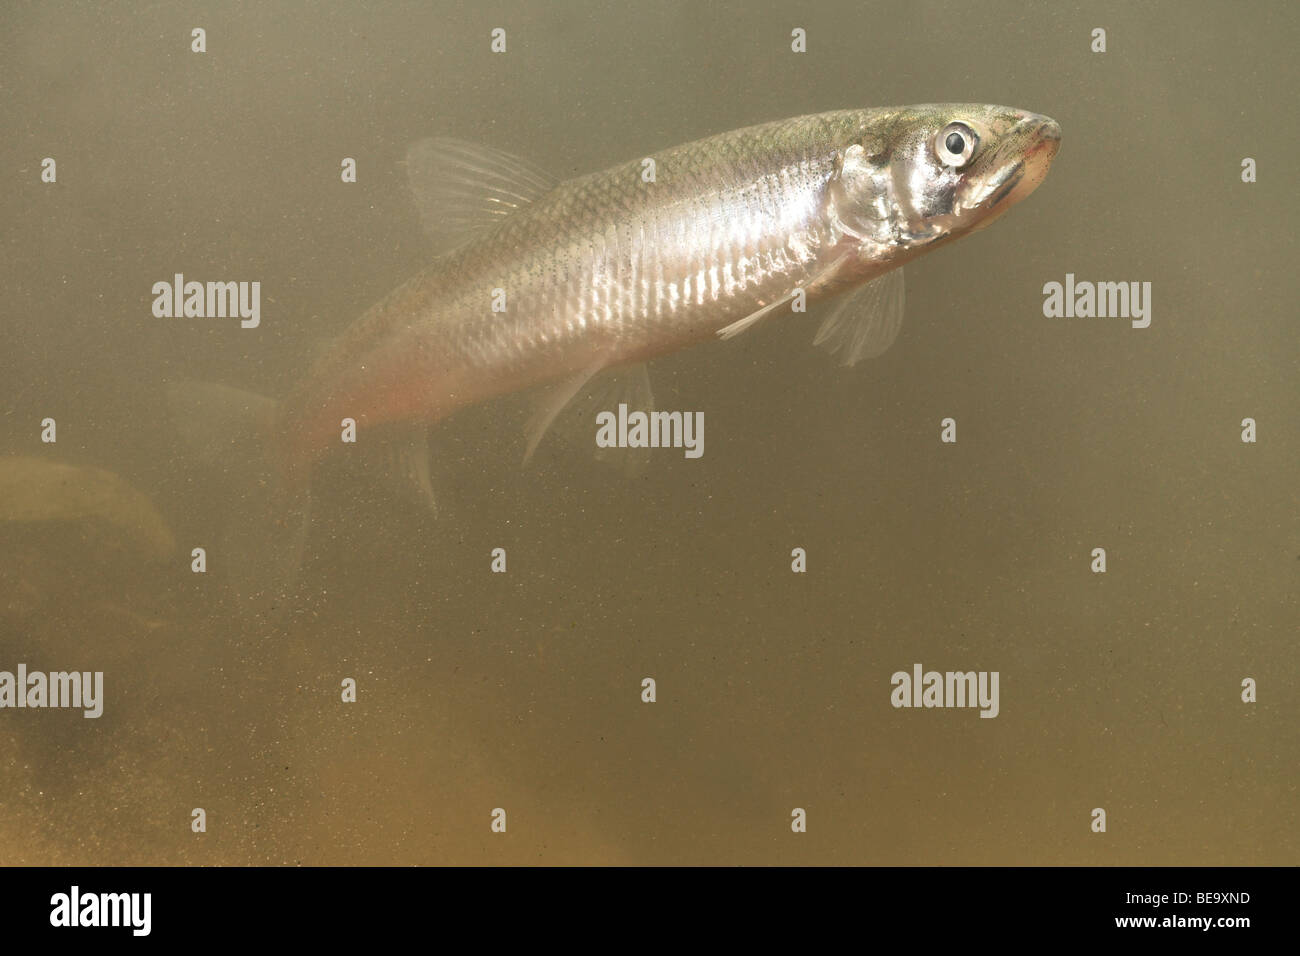 photo of an adult European smelt swimming in muddy water Stock Photo